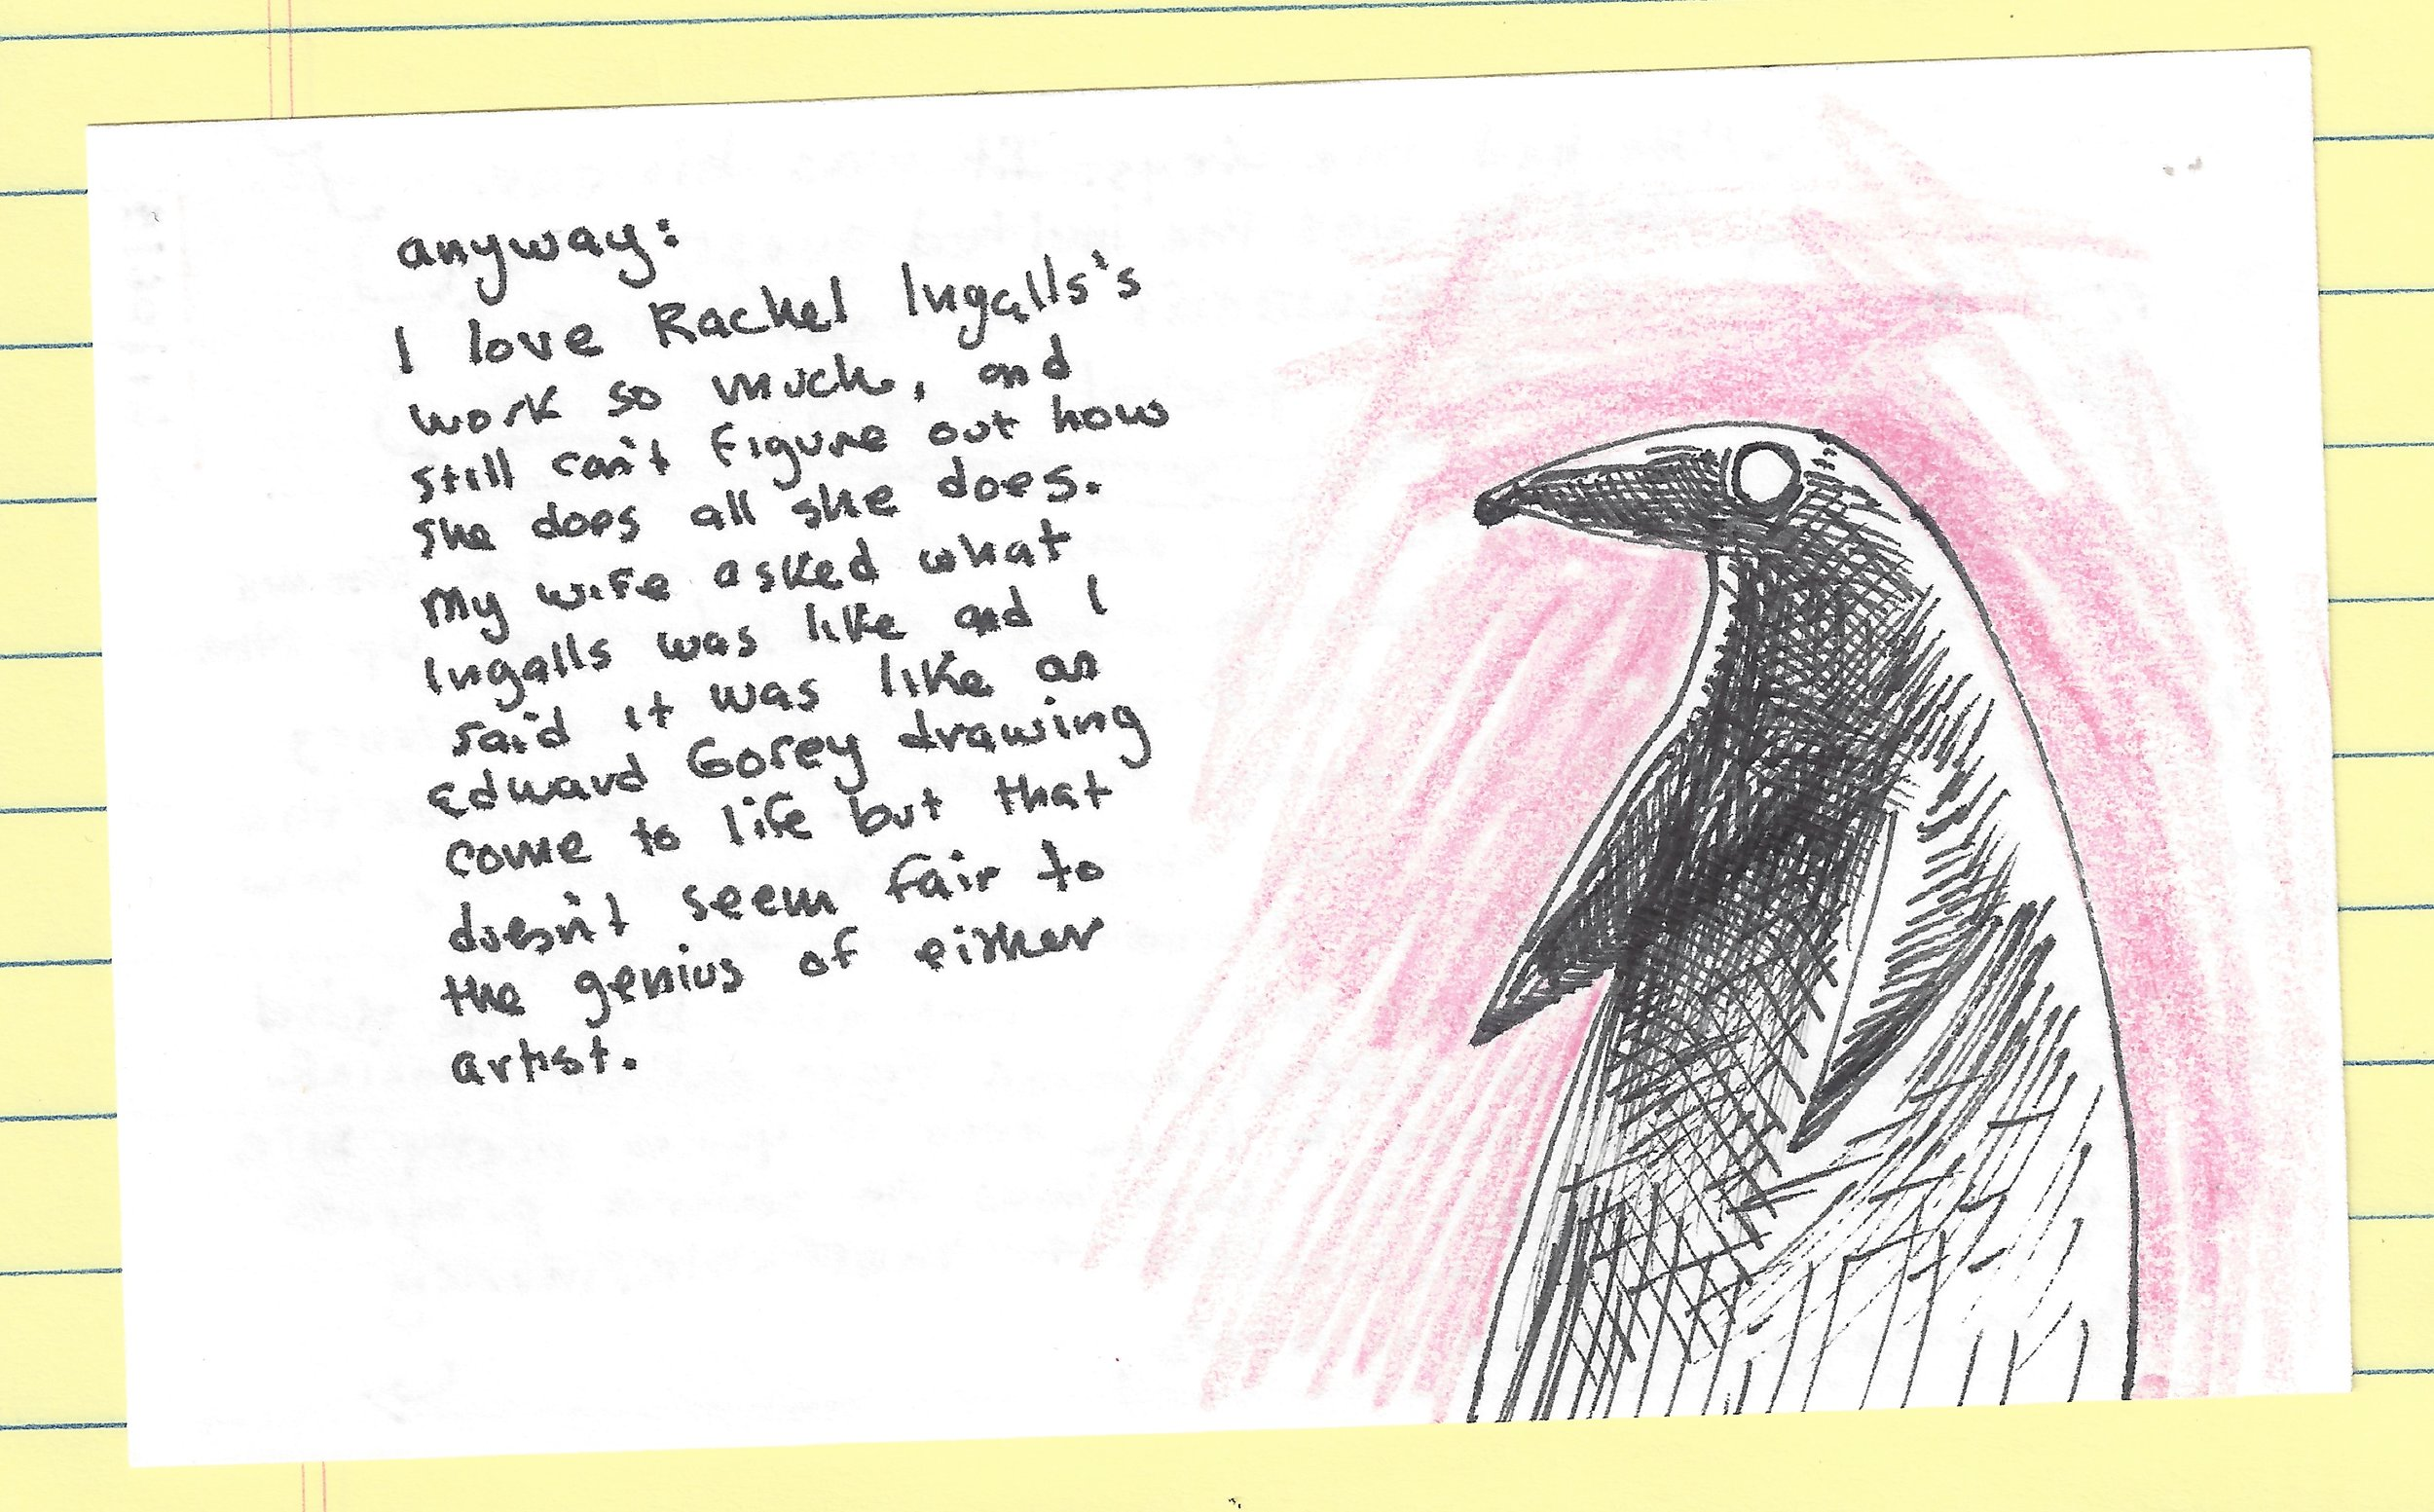 index card on rachel ingalls and nightmare social niceties back.jpg